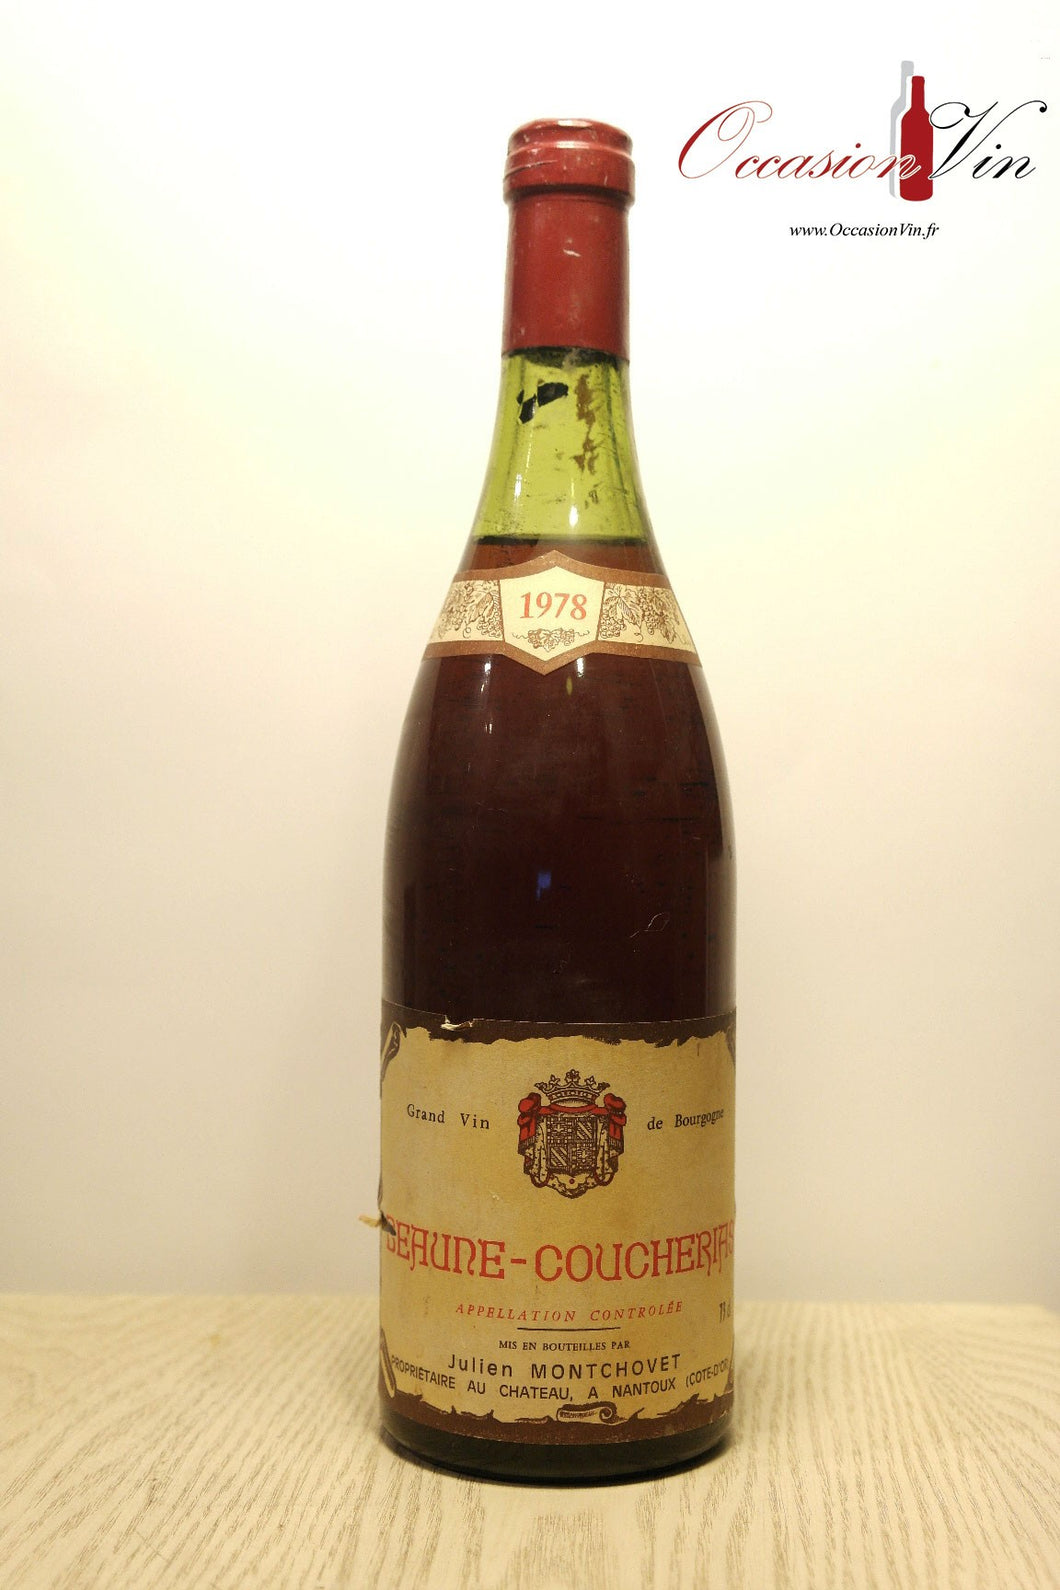 Beaune-Coucherias Montchovet Vin 1978